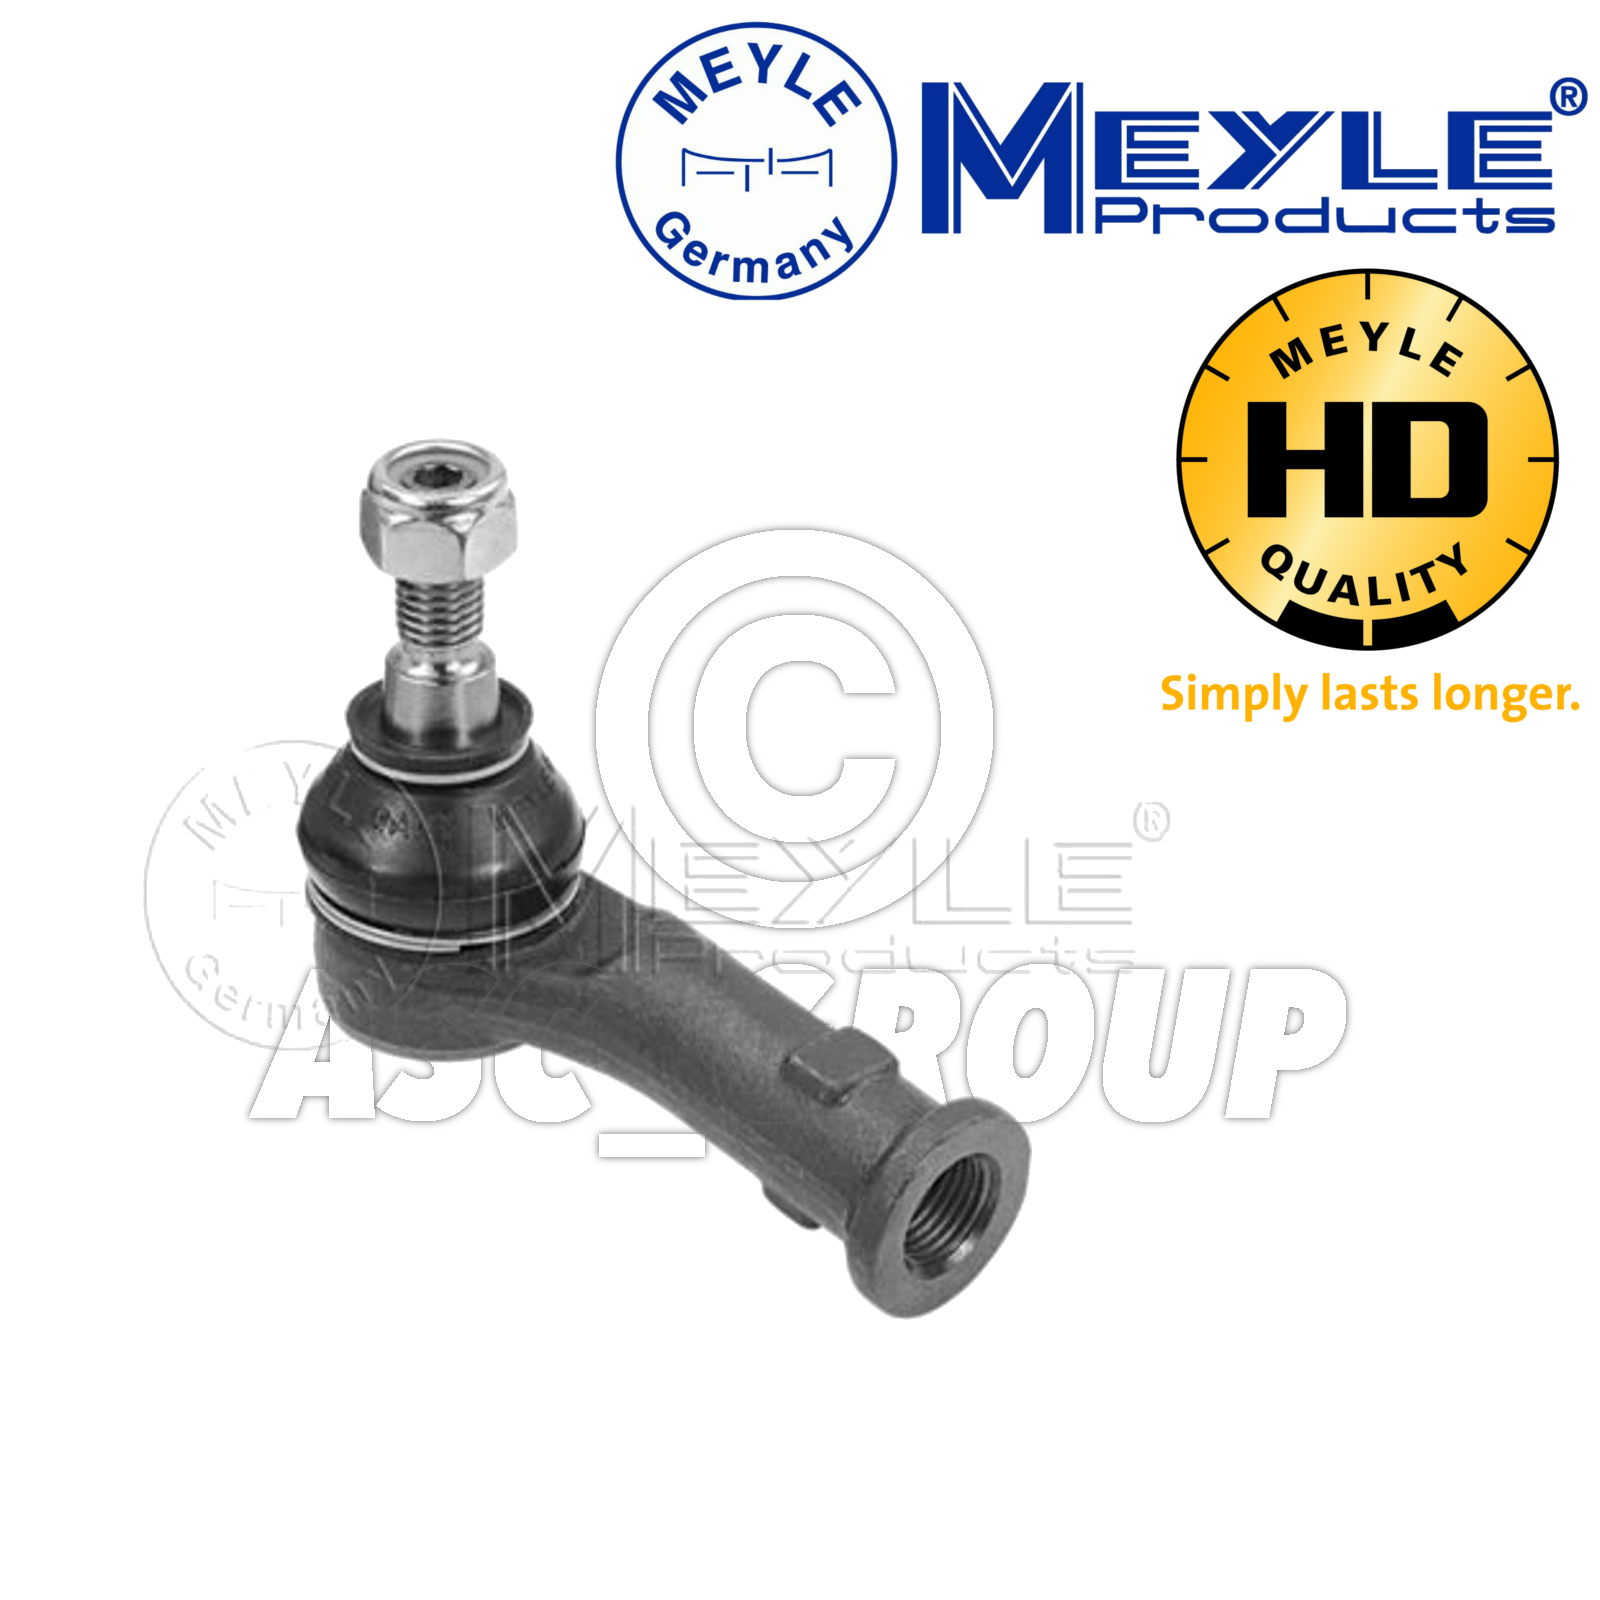 116 030 0014 MEYLE Tie rod assembly fit VW